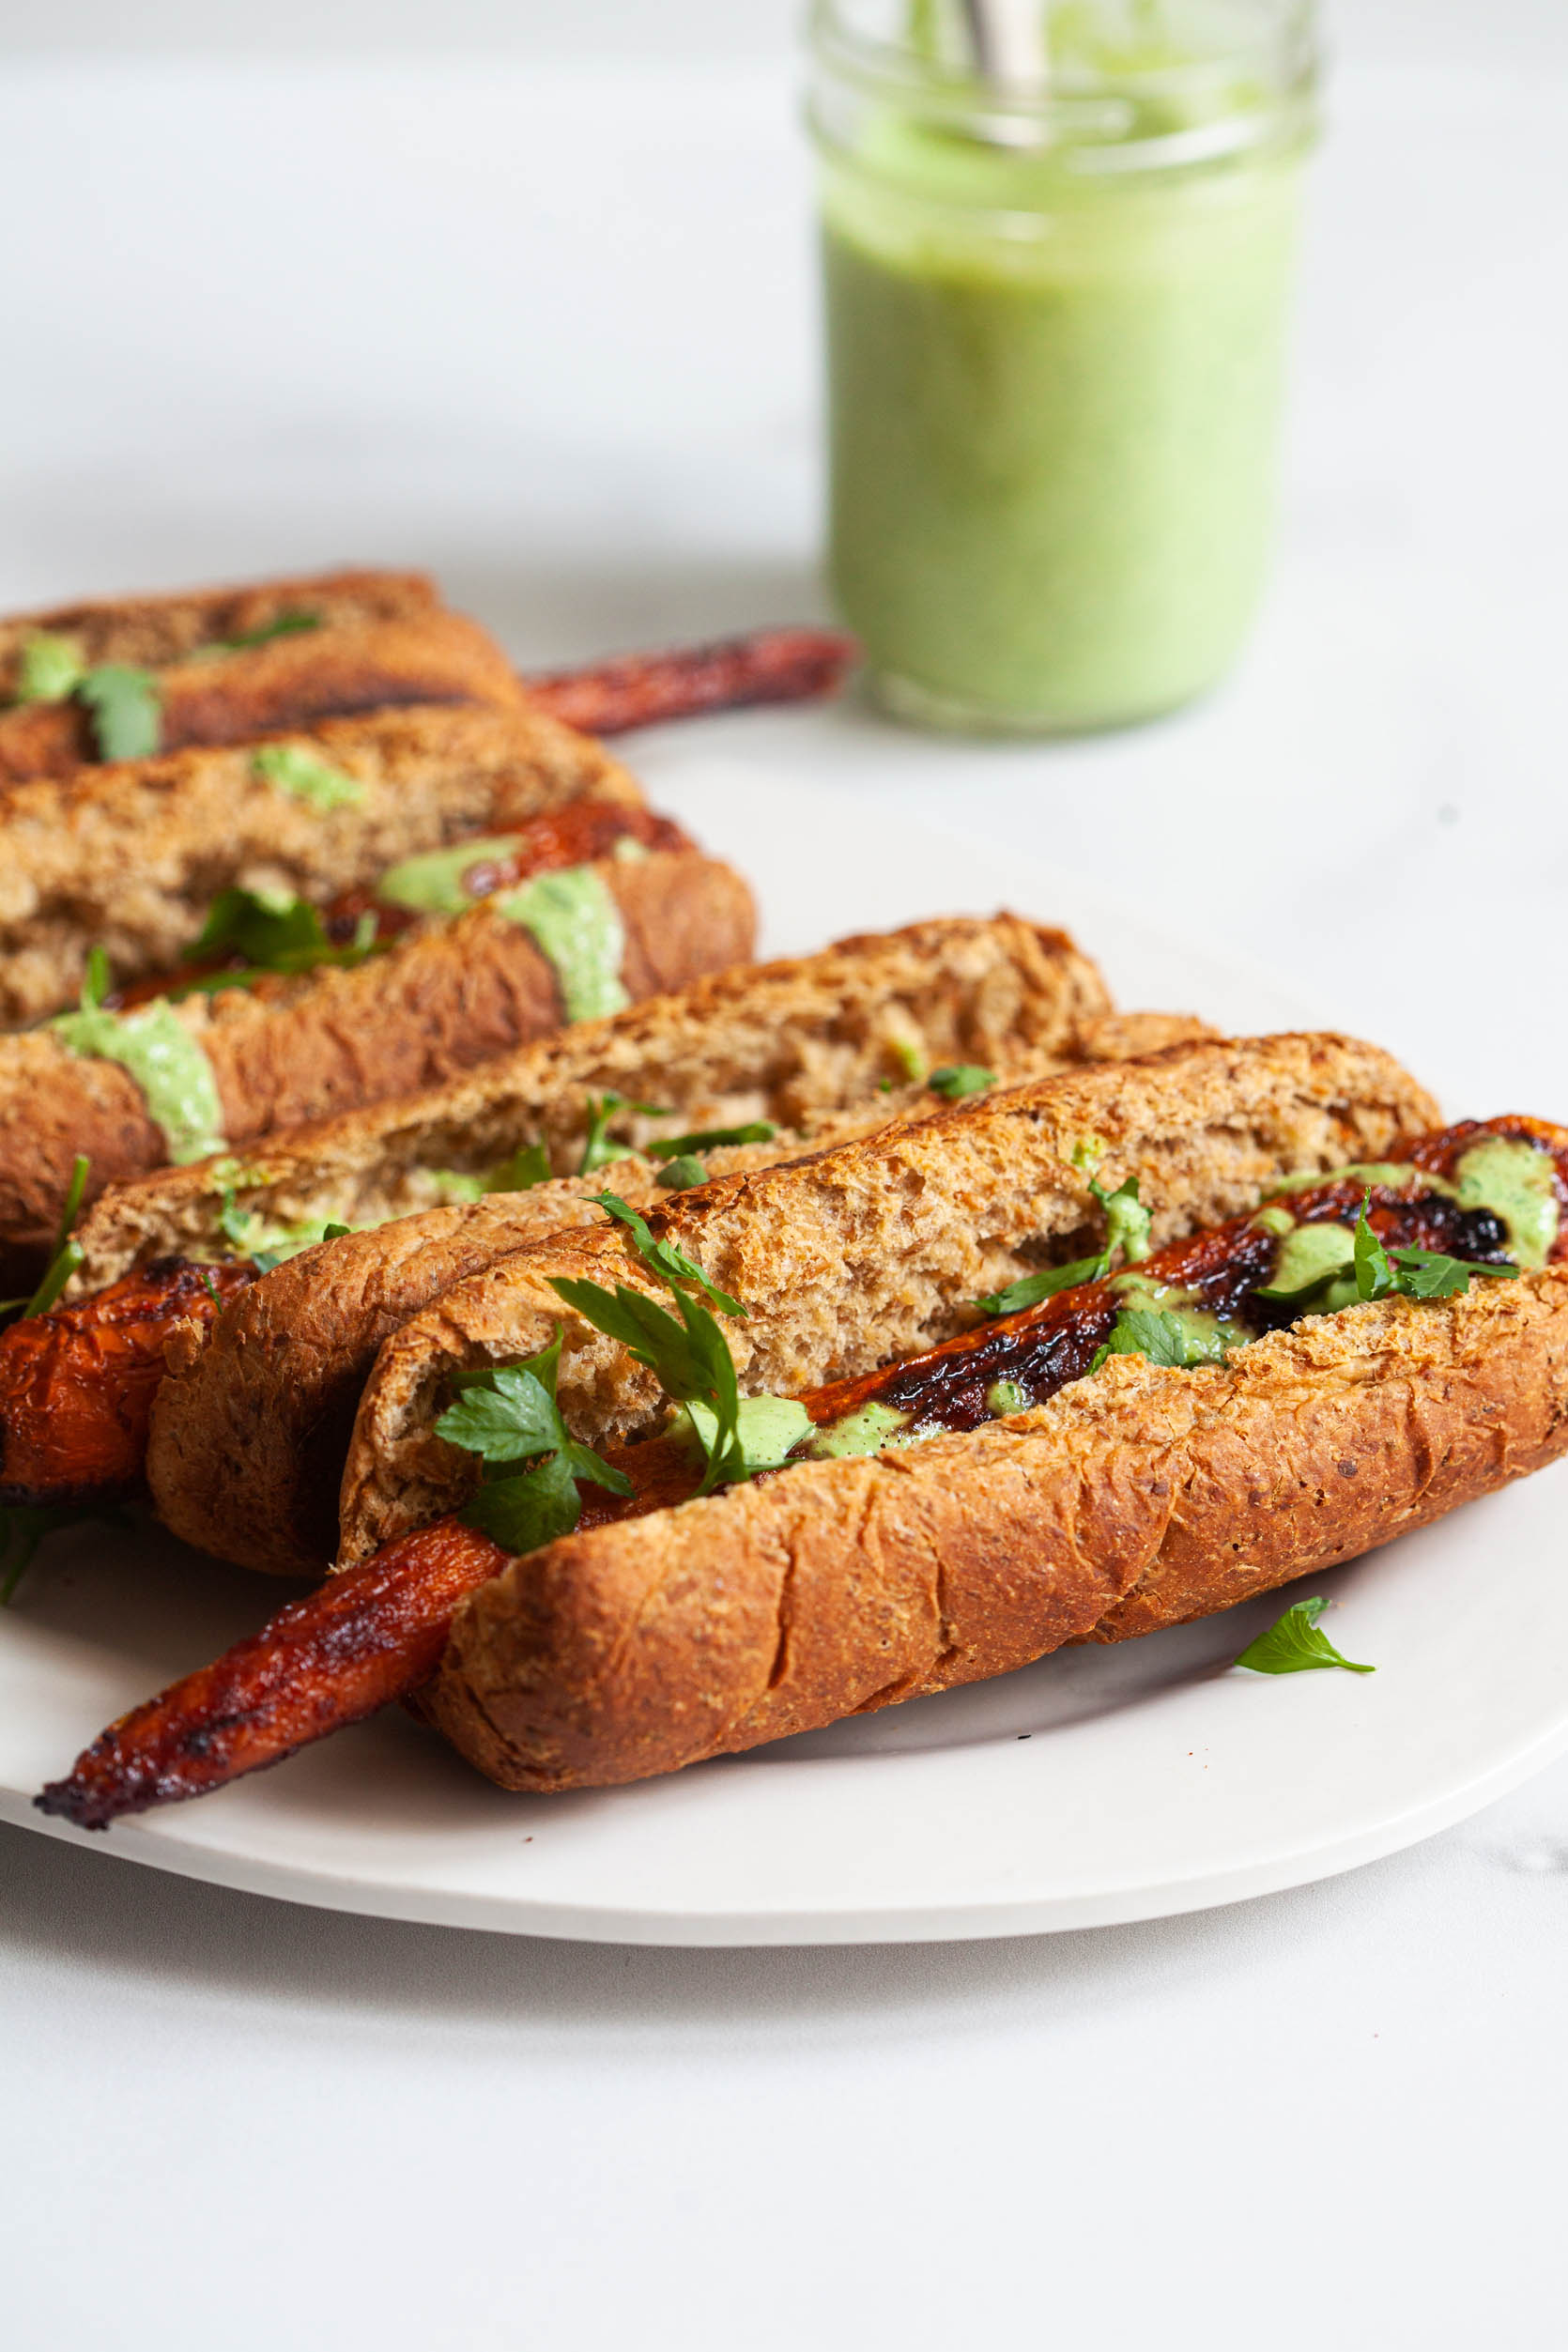 Sweet & Smoky Glazed Carrot Dogs | The Full Helping